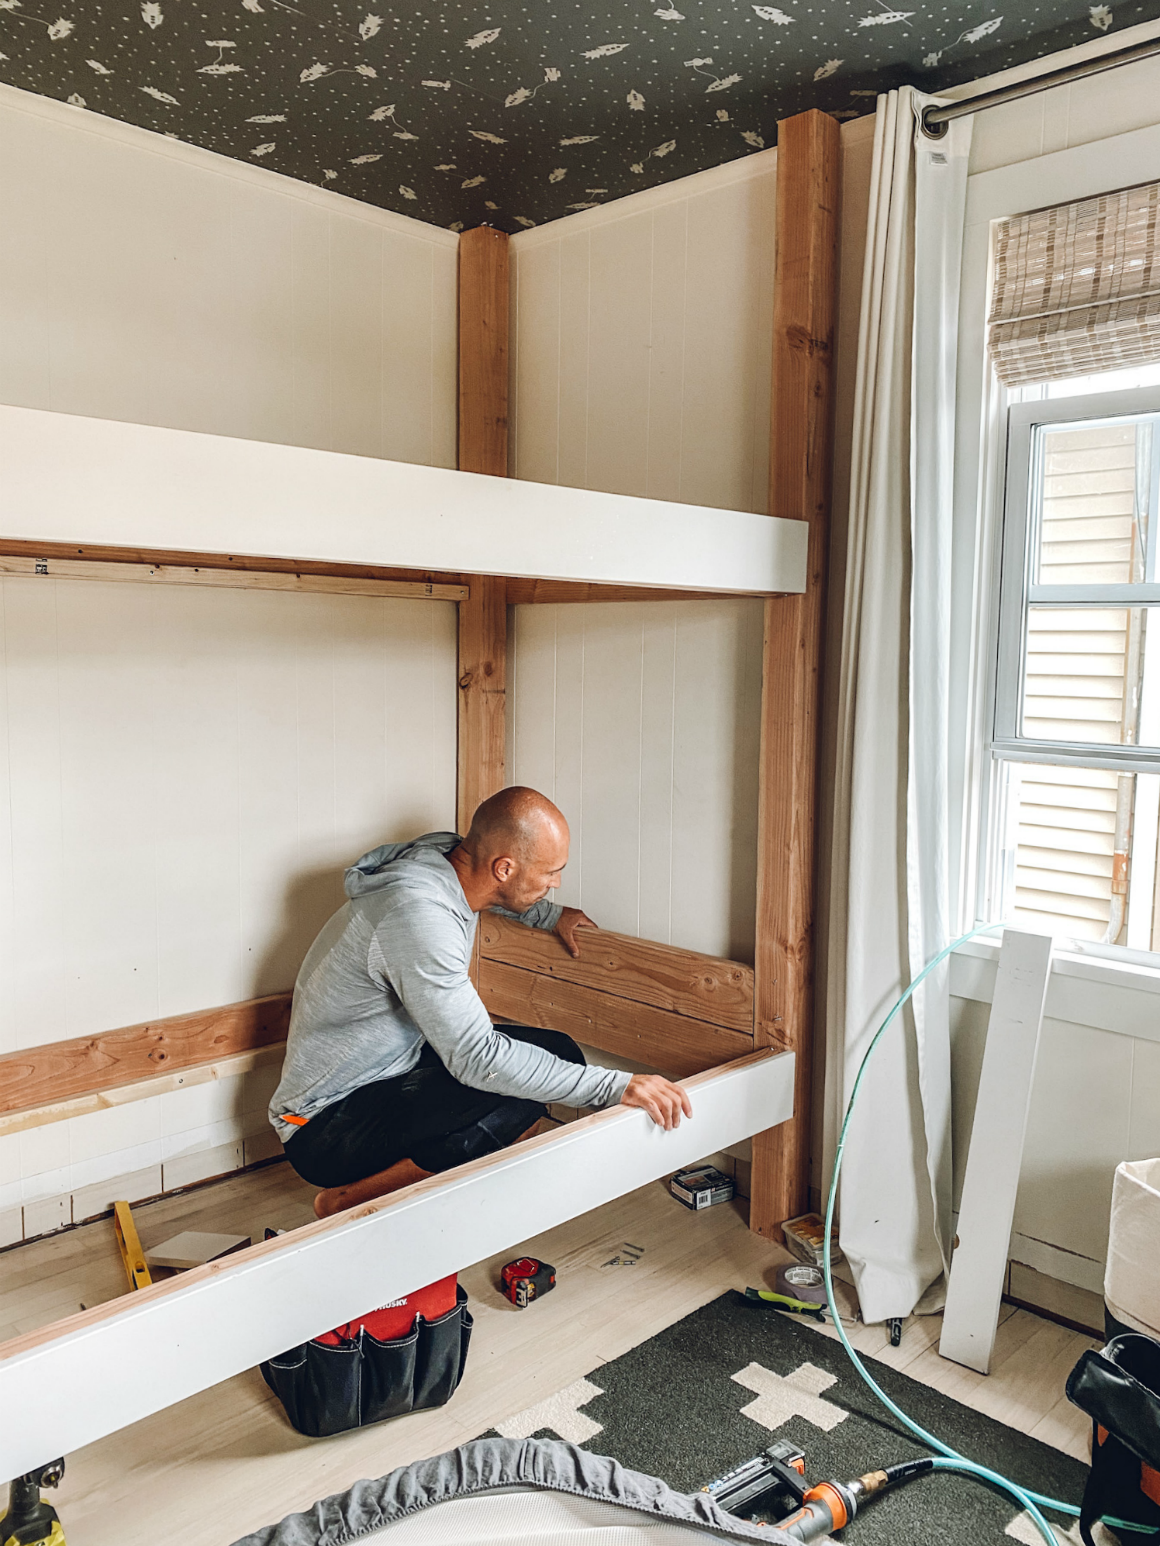 Bunk Beds- How to make a bunk bed- 44- DIY bunk bed- How to build a bunk bed